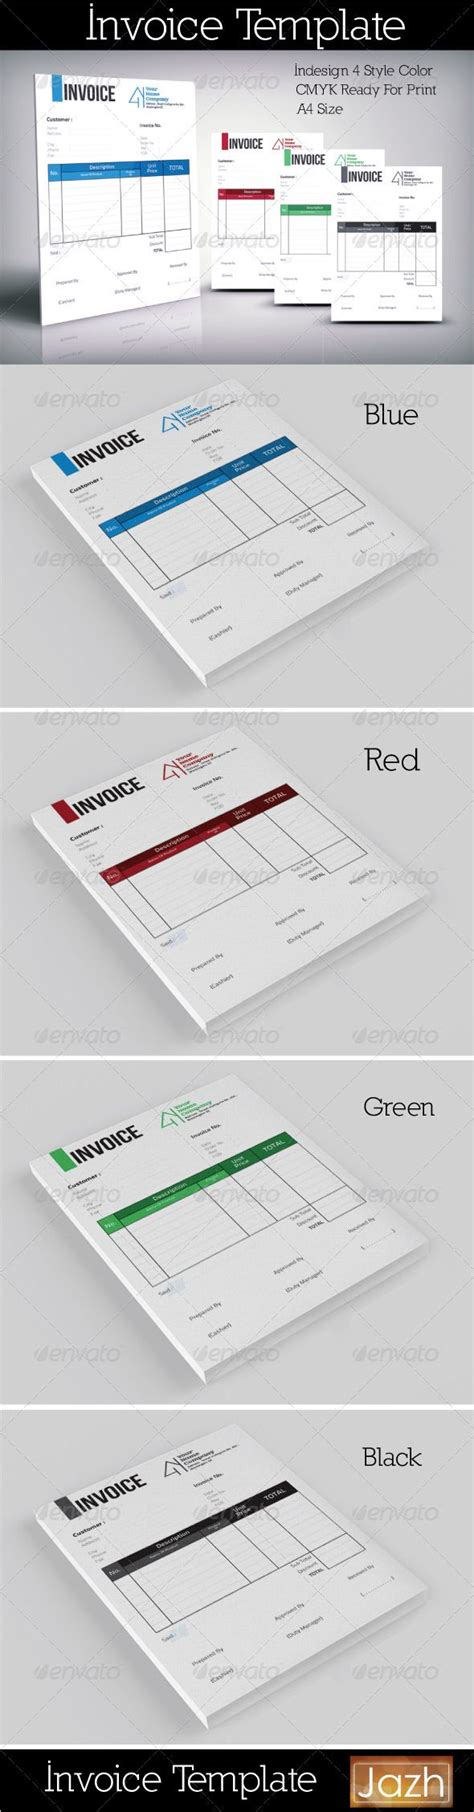 Adobe Indesign Thank You Card Template by 17 Best Images About Print Templates On Fonts